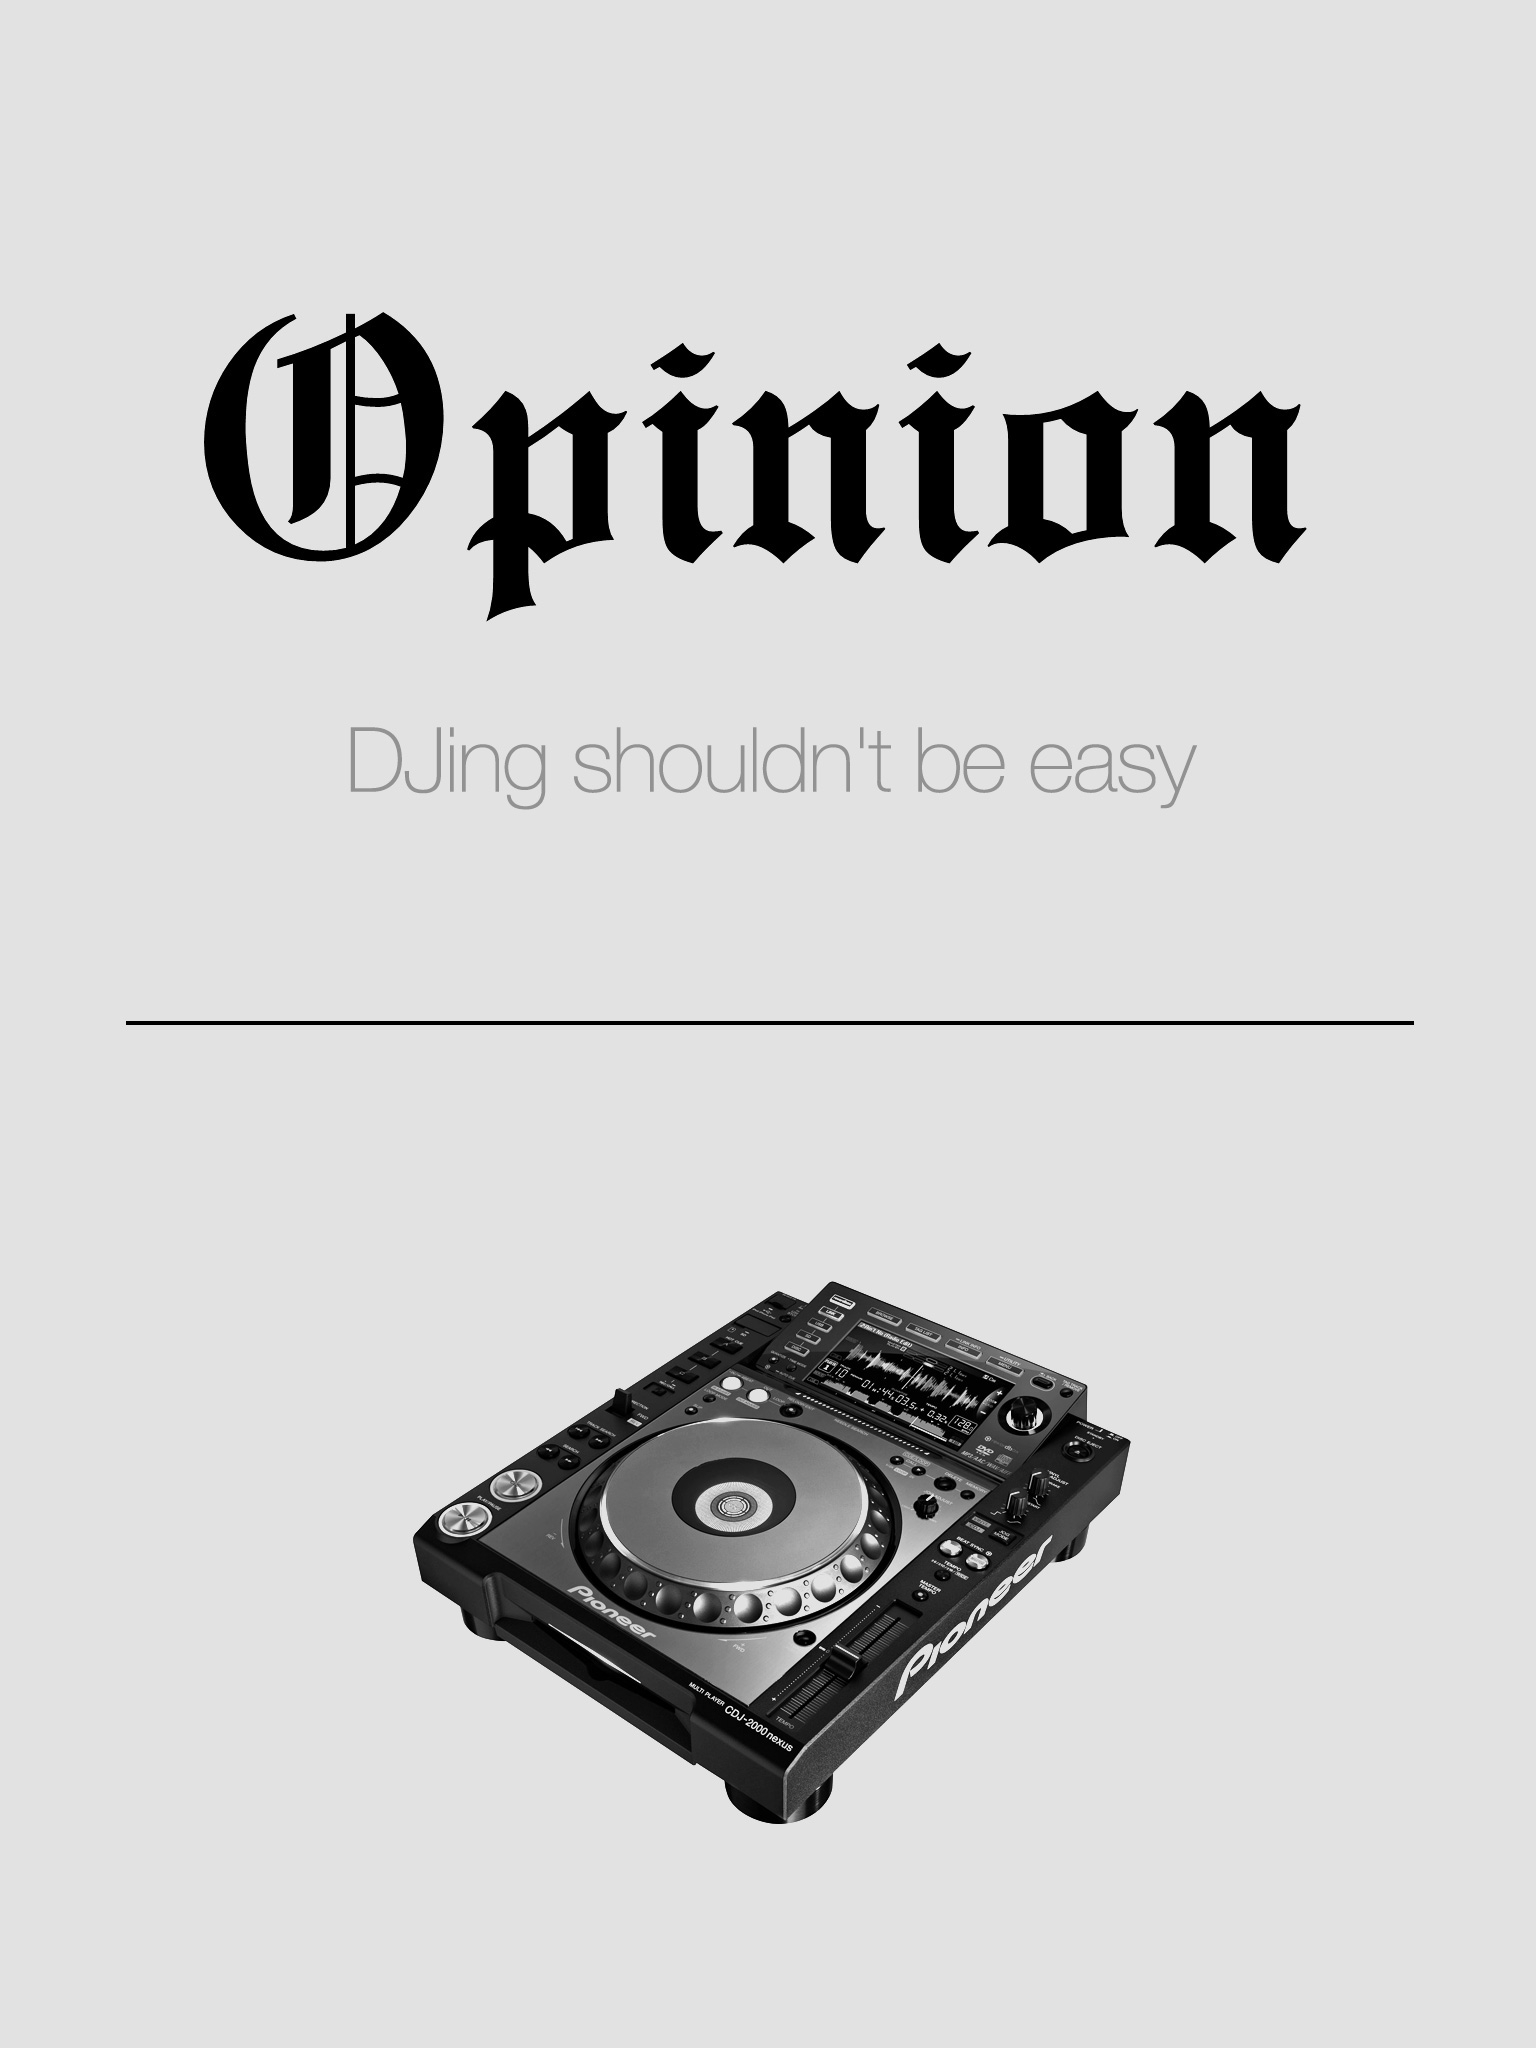 RA: Opinion: DJing shouldn't be easy